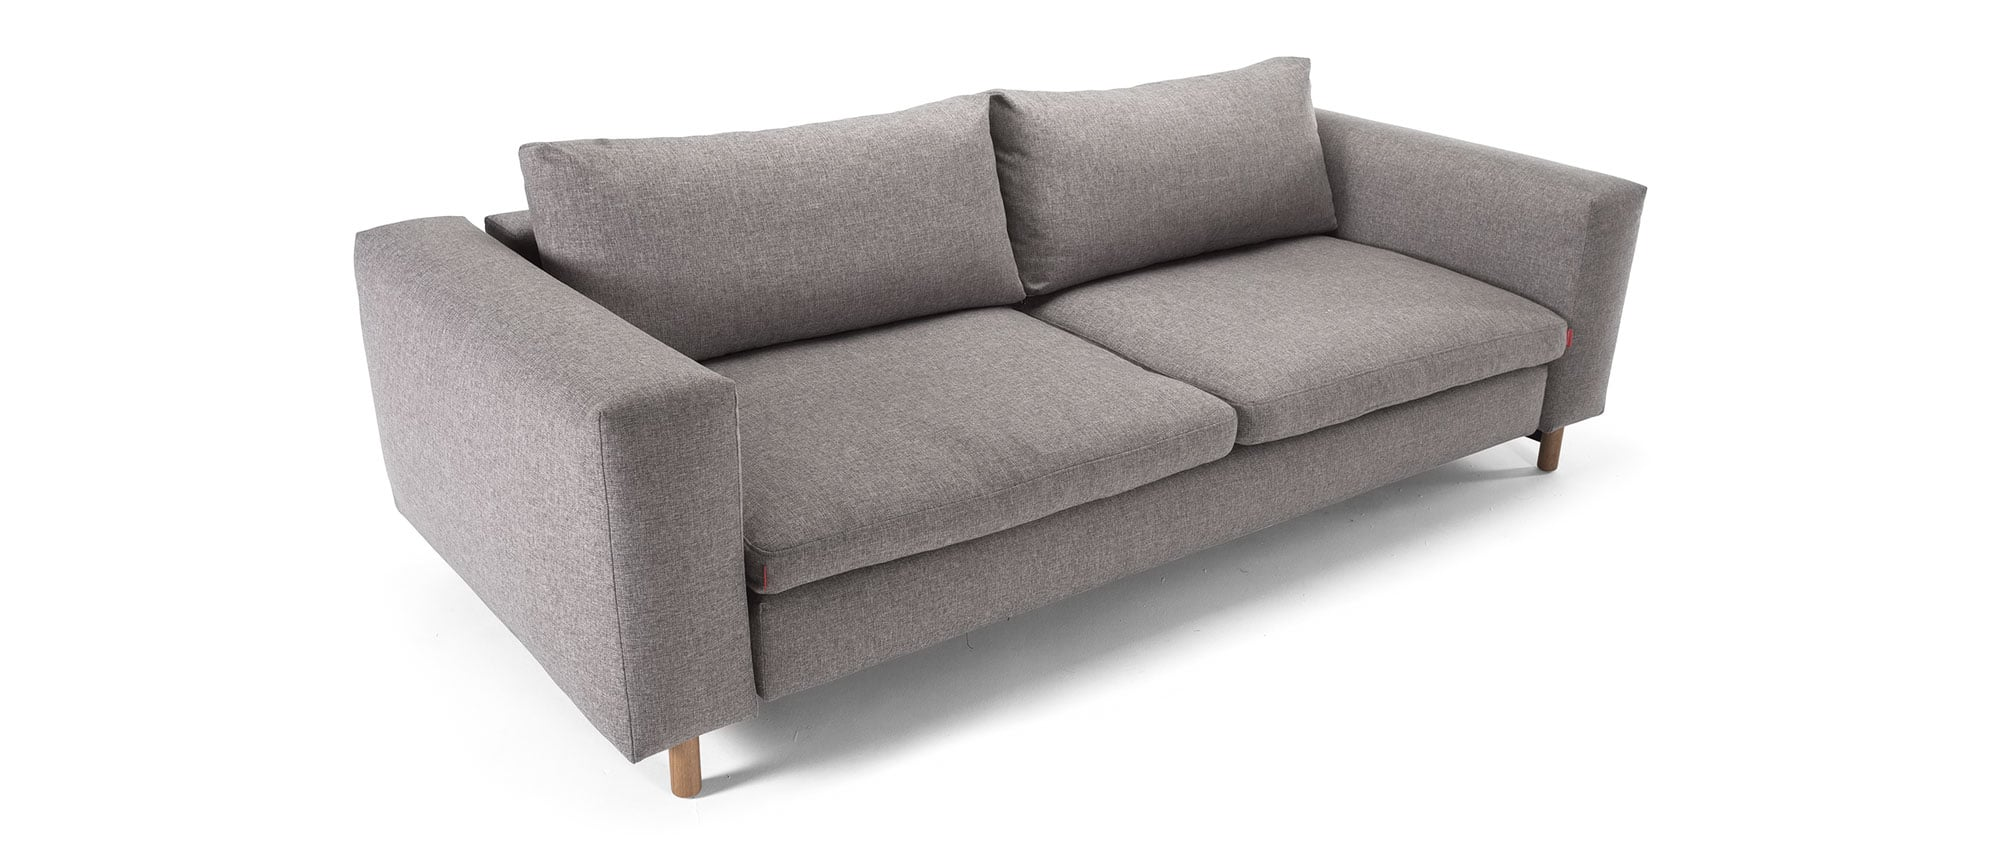 Innovation Schlafsofas Berlin Innovation Schlafsofa Masica Bigsofa Mit Gästebettfunktion